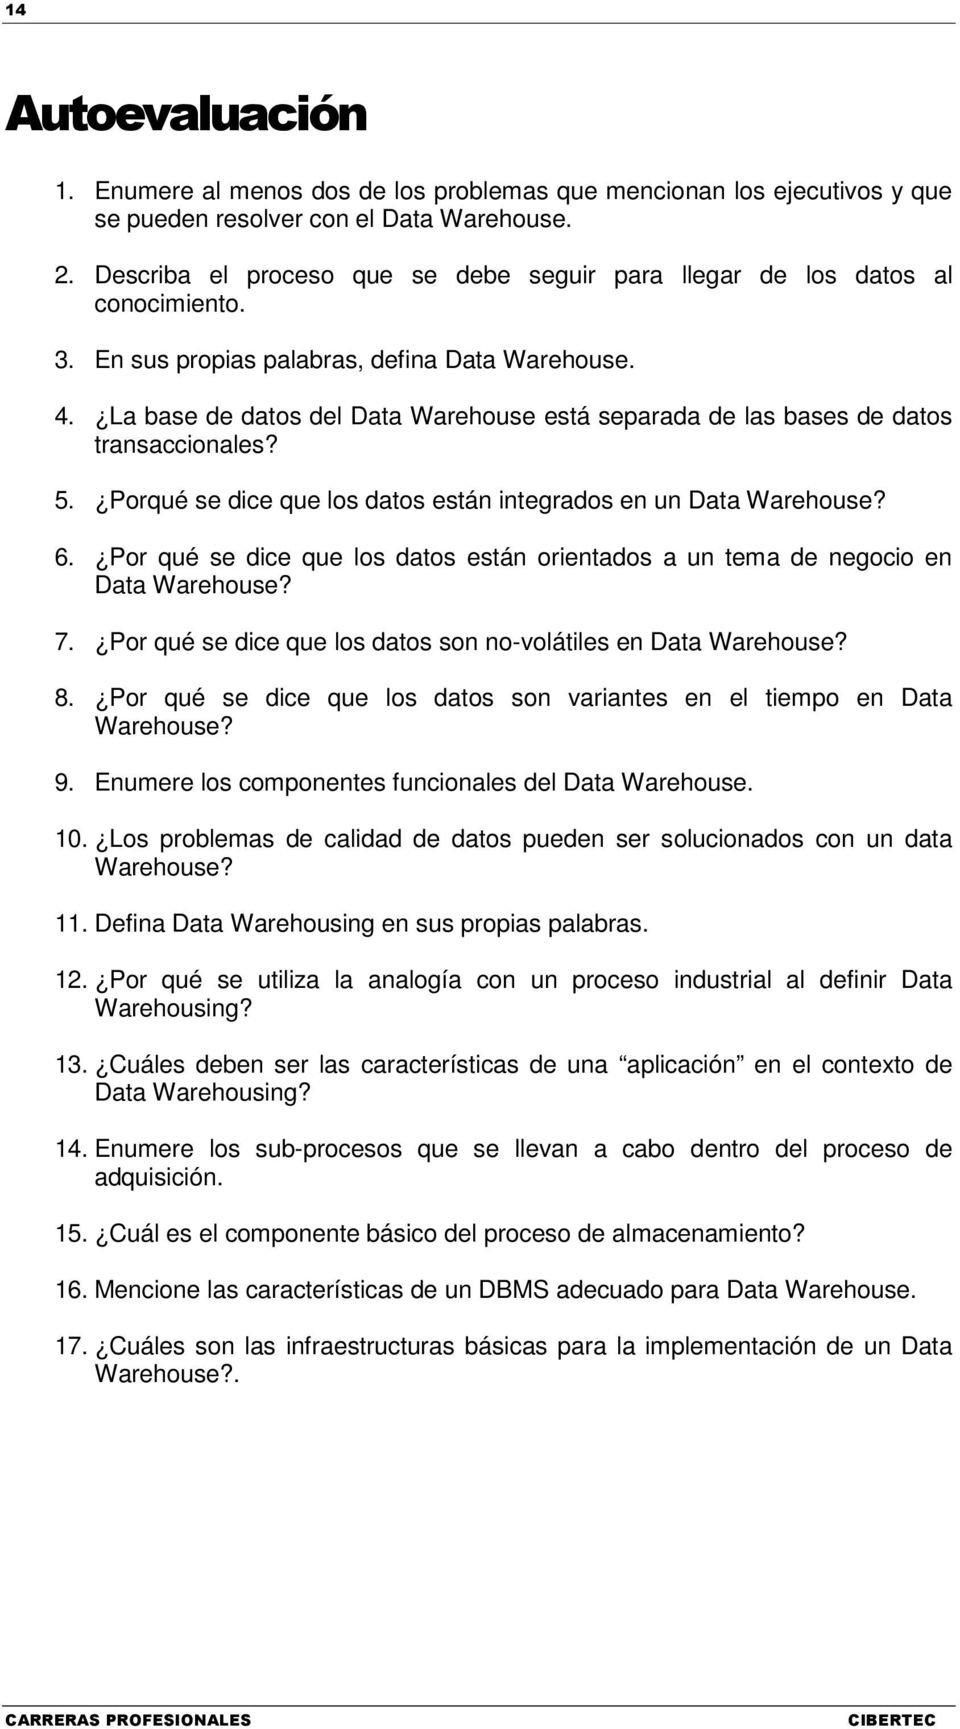 La base de datos del Data Warehouse está separada de las bases de datos transaccionales? 5. Porqué se dice que los datos están integrados en un Data Warehouse? 6.